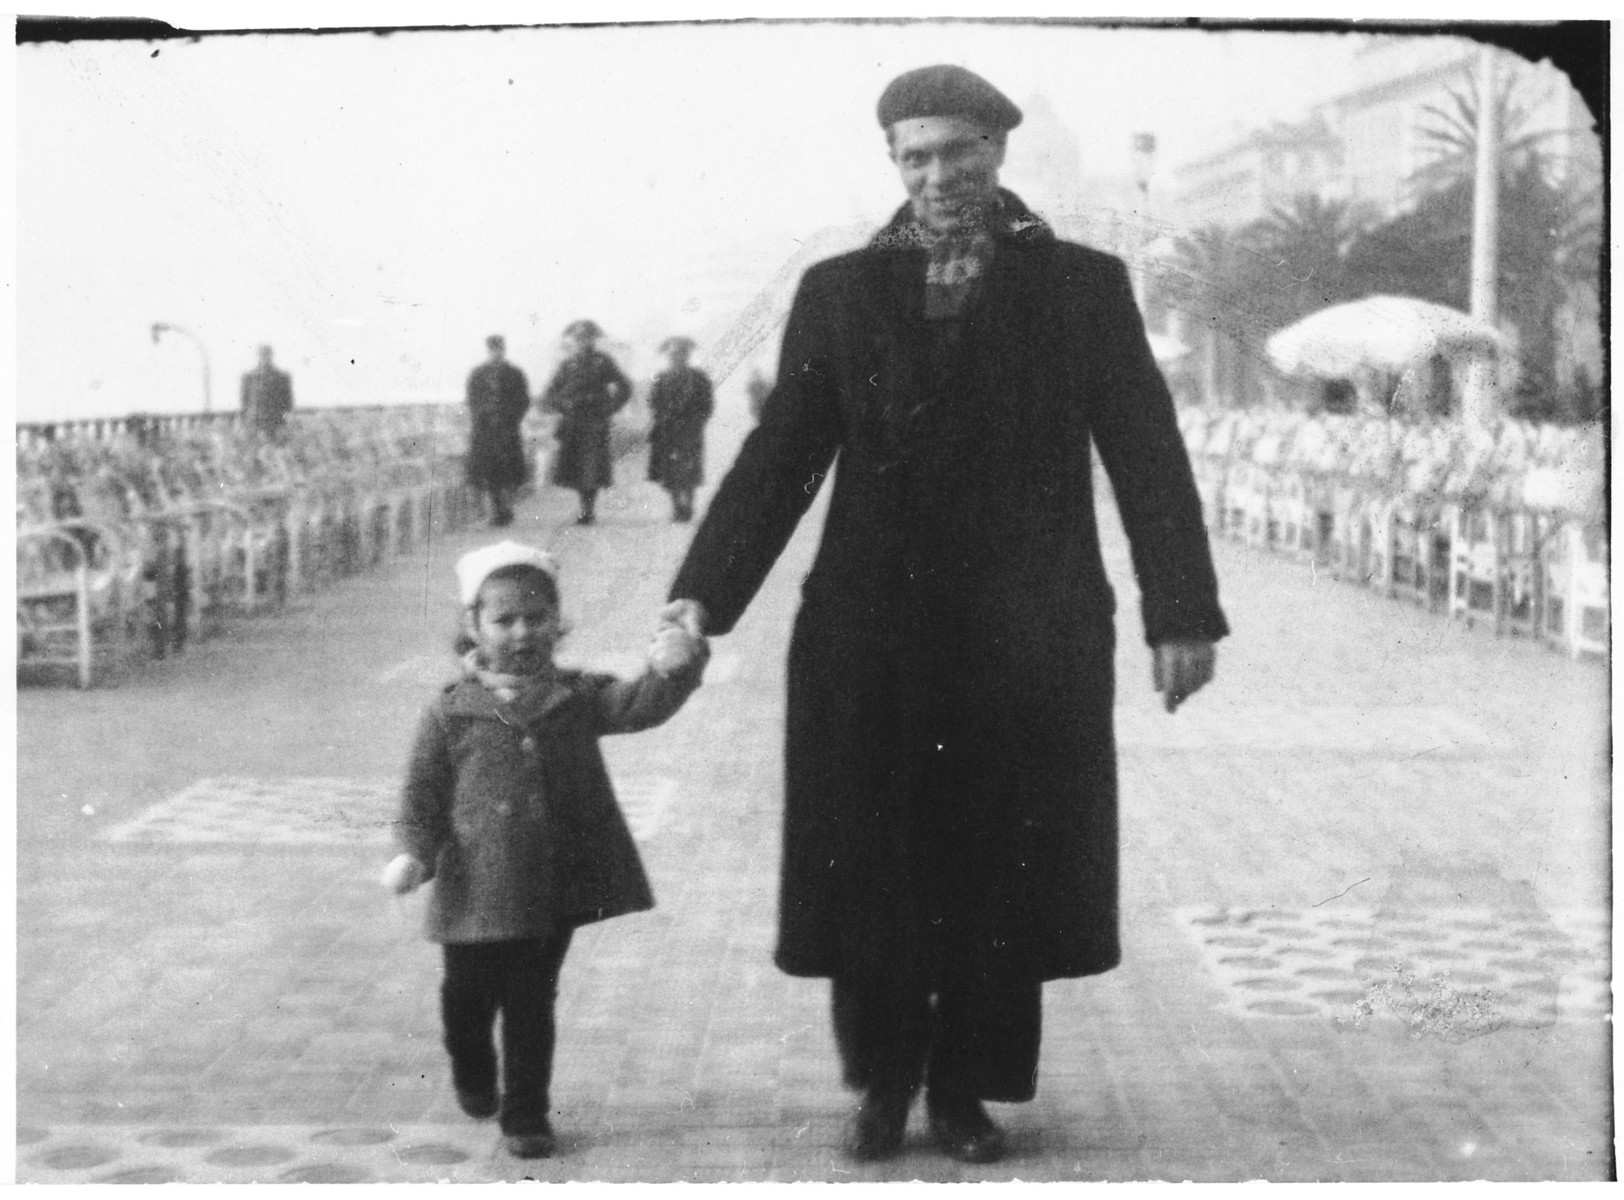 Esther Almer walks down the Promenade des Anglais in Nice holding her father's hand.